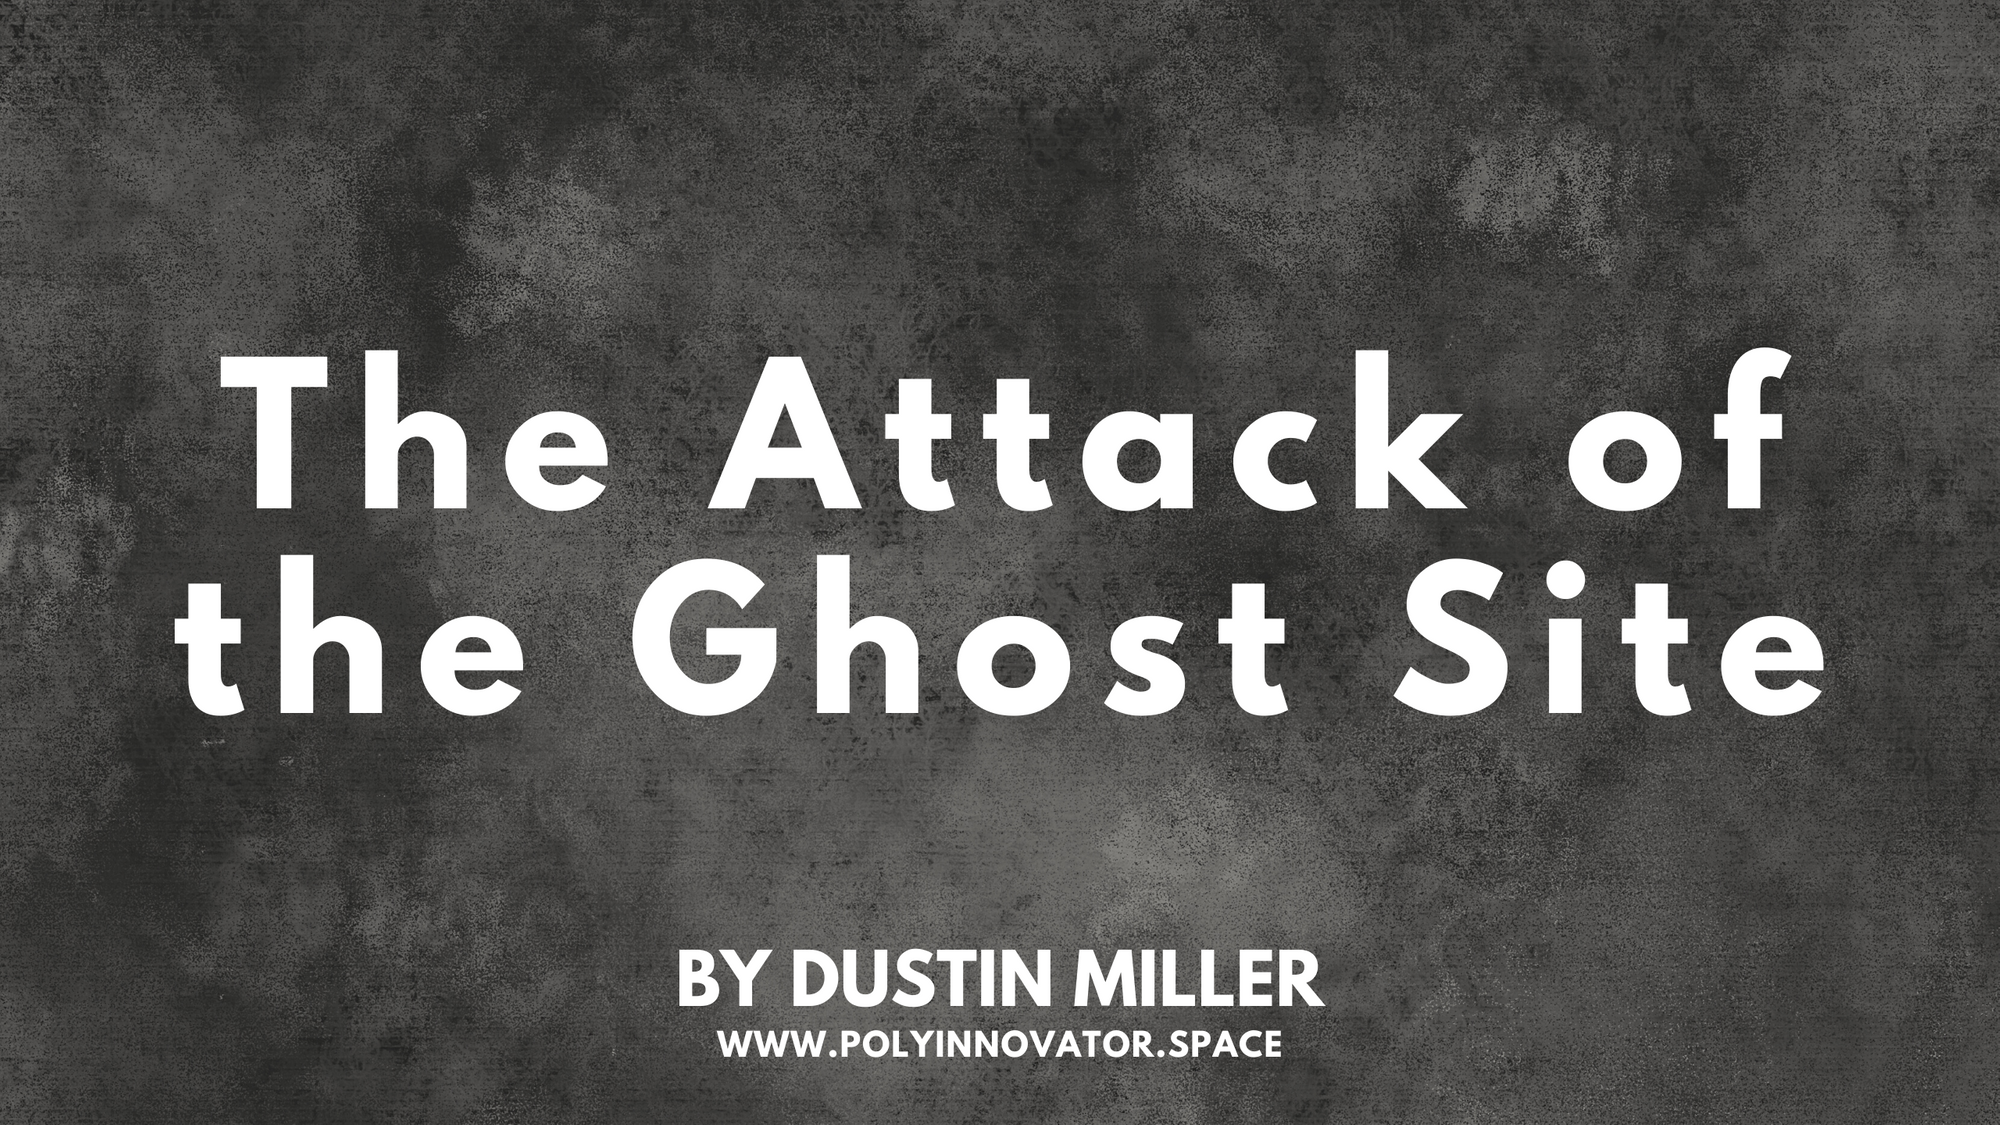 The Attack of the Ghost Site